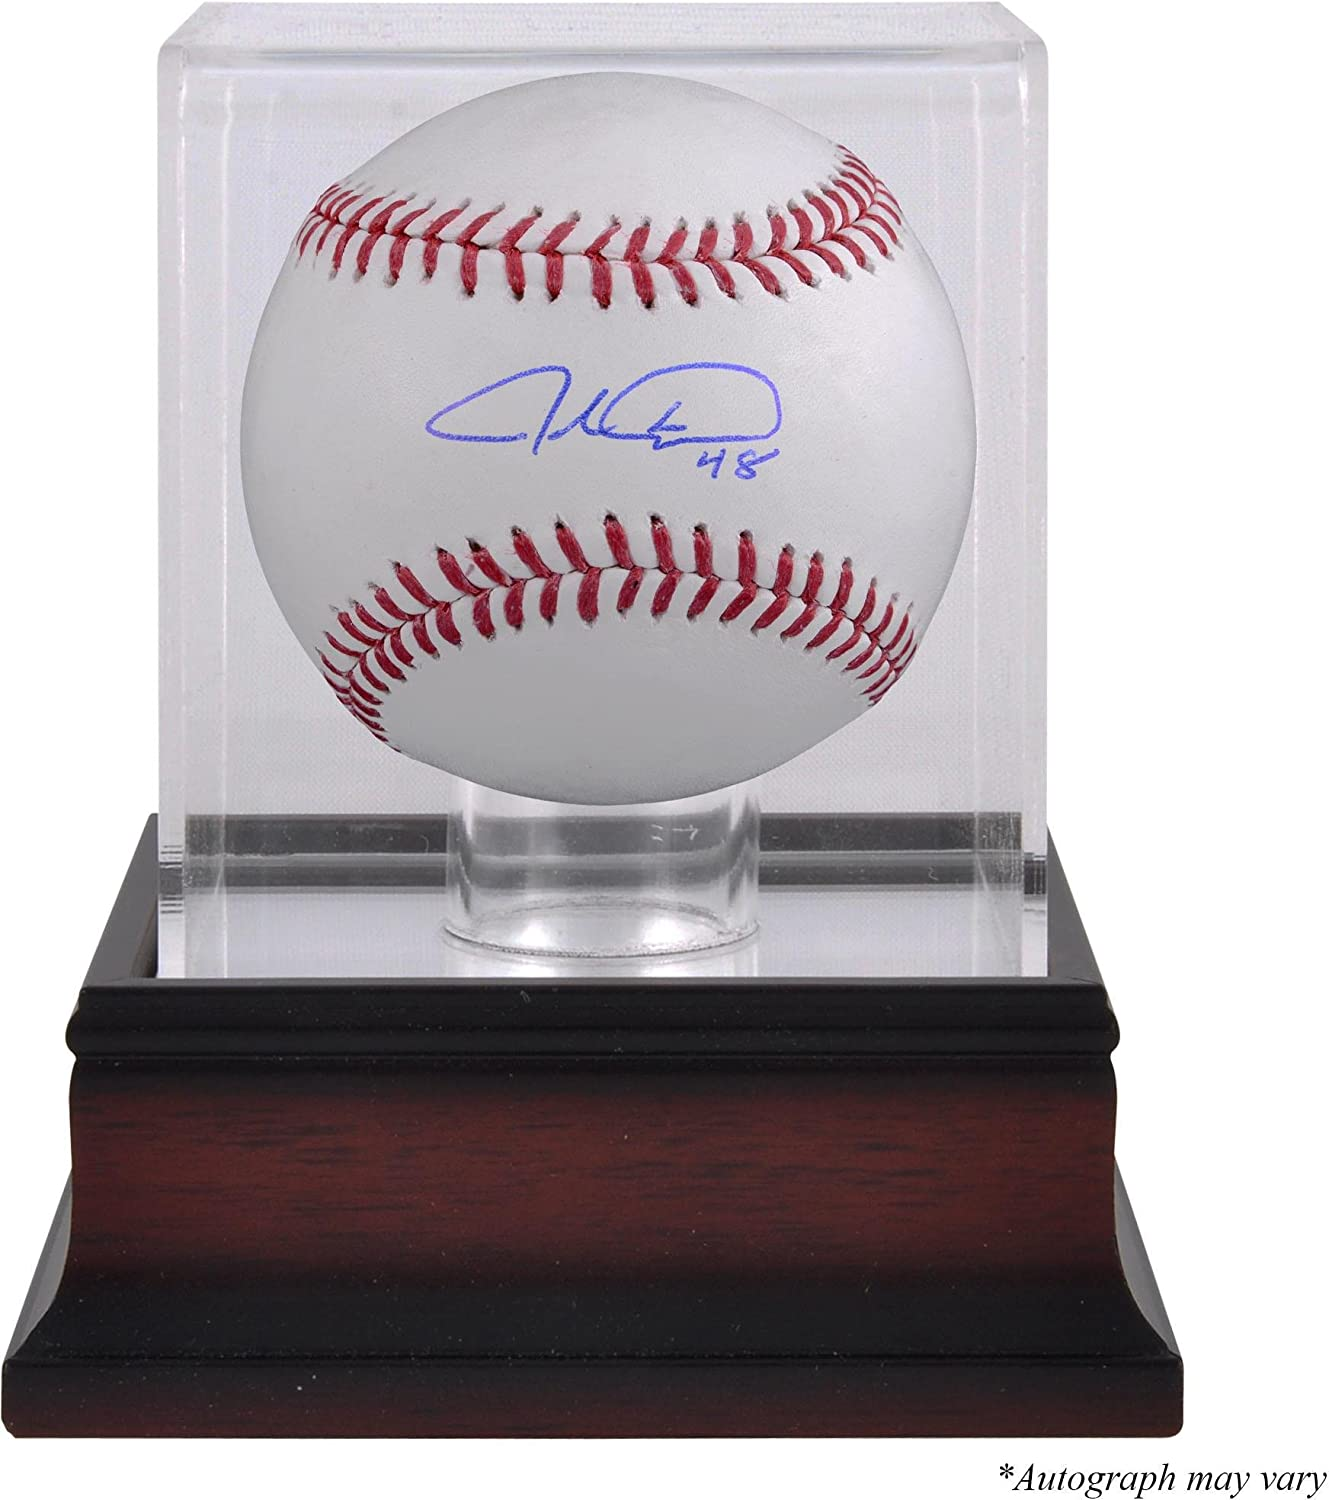 Jacob deGrom Autographed Baseball and Mahogany Baseball Display Case - Fanatics Authentic Certified - Autographed Baseballs